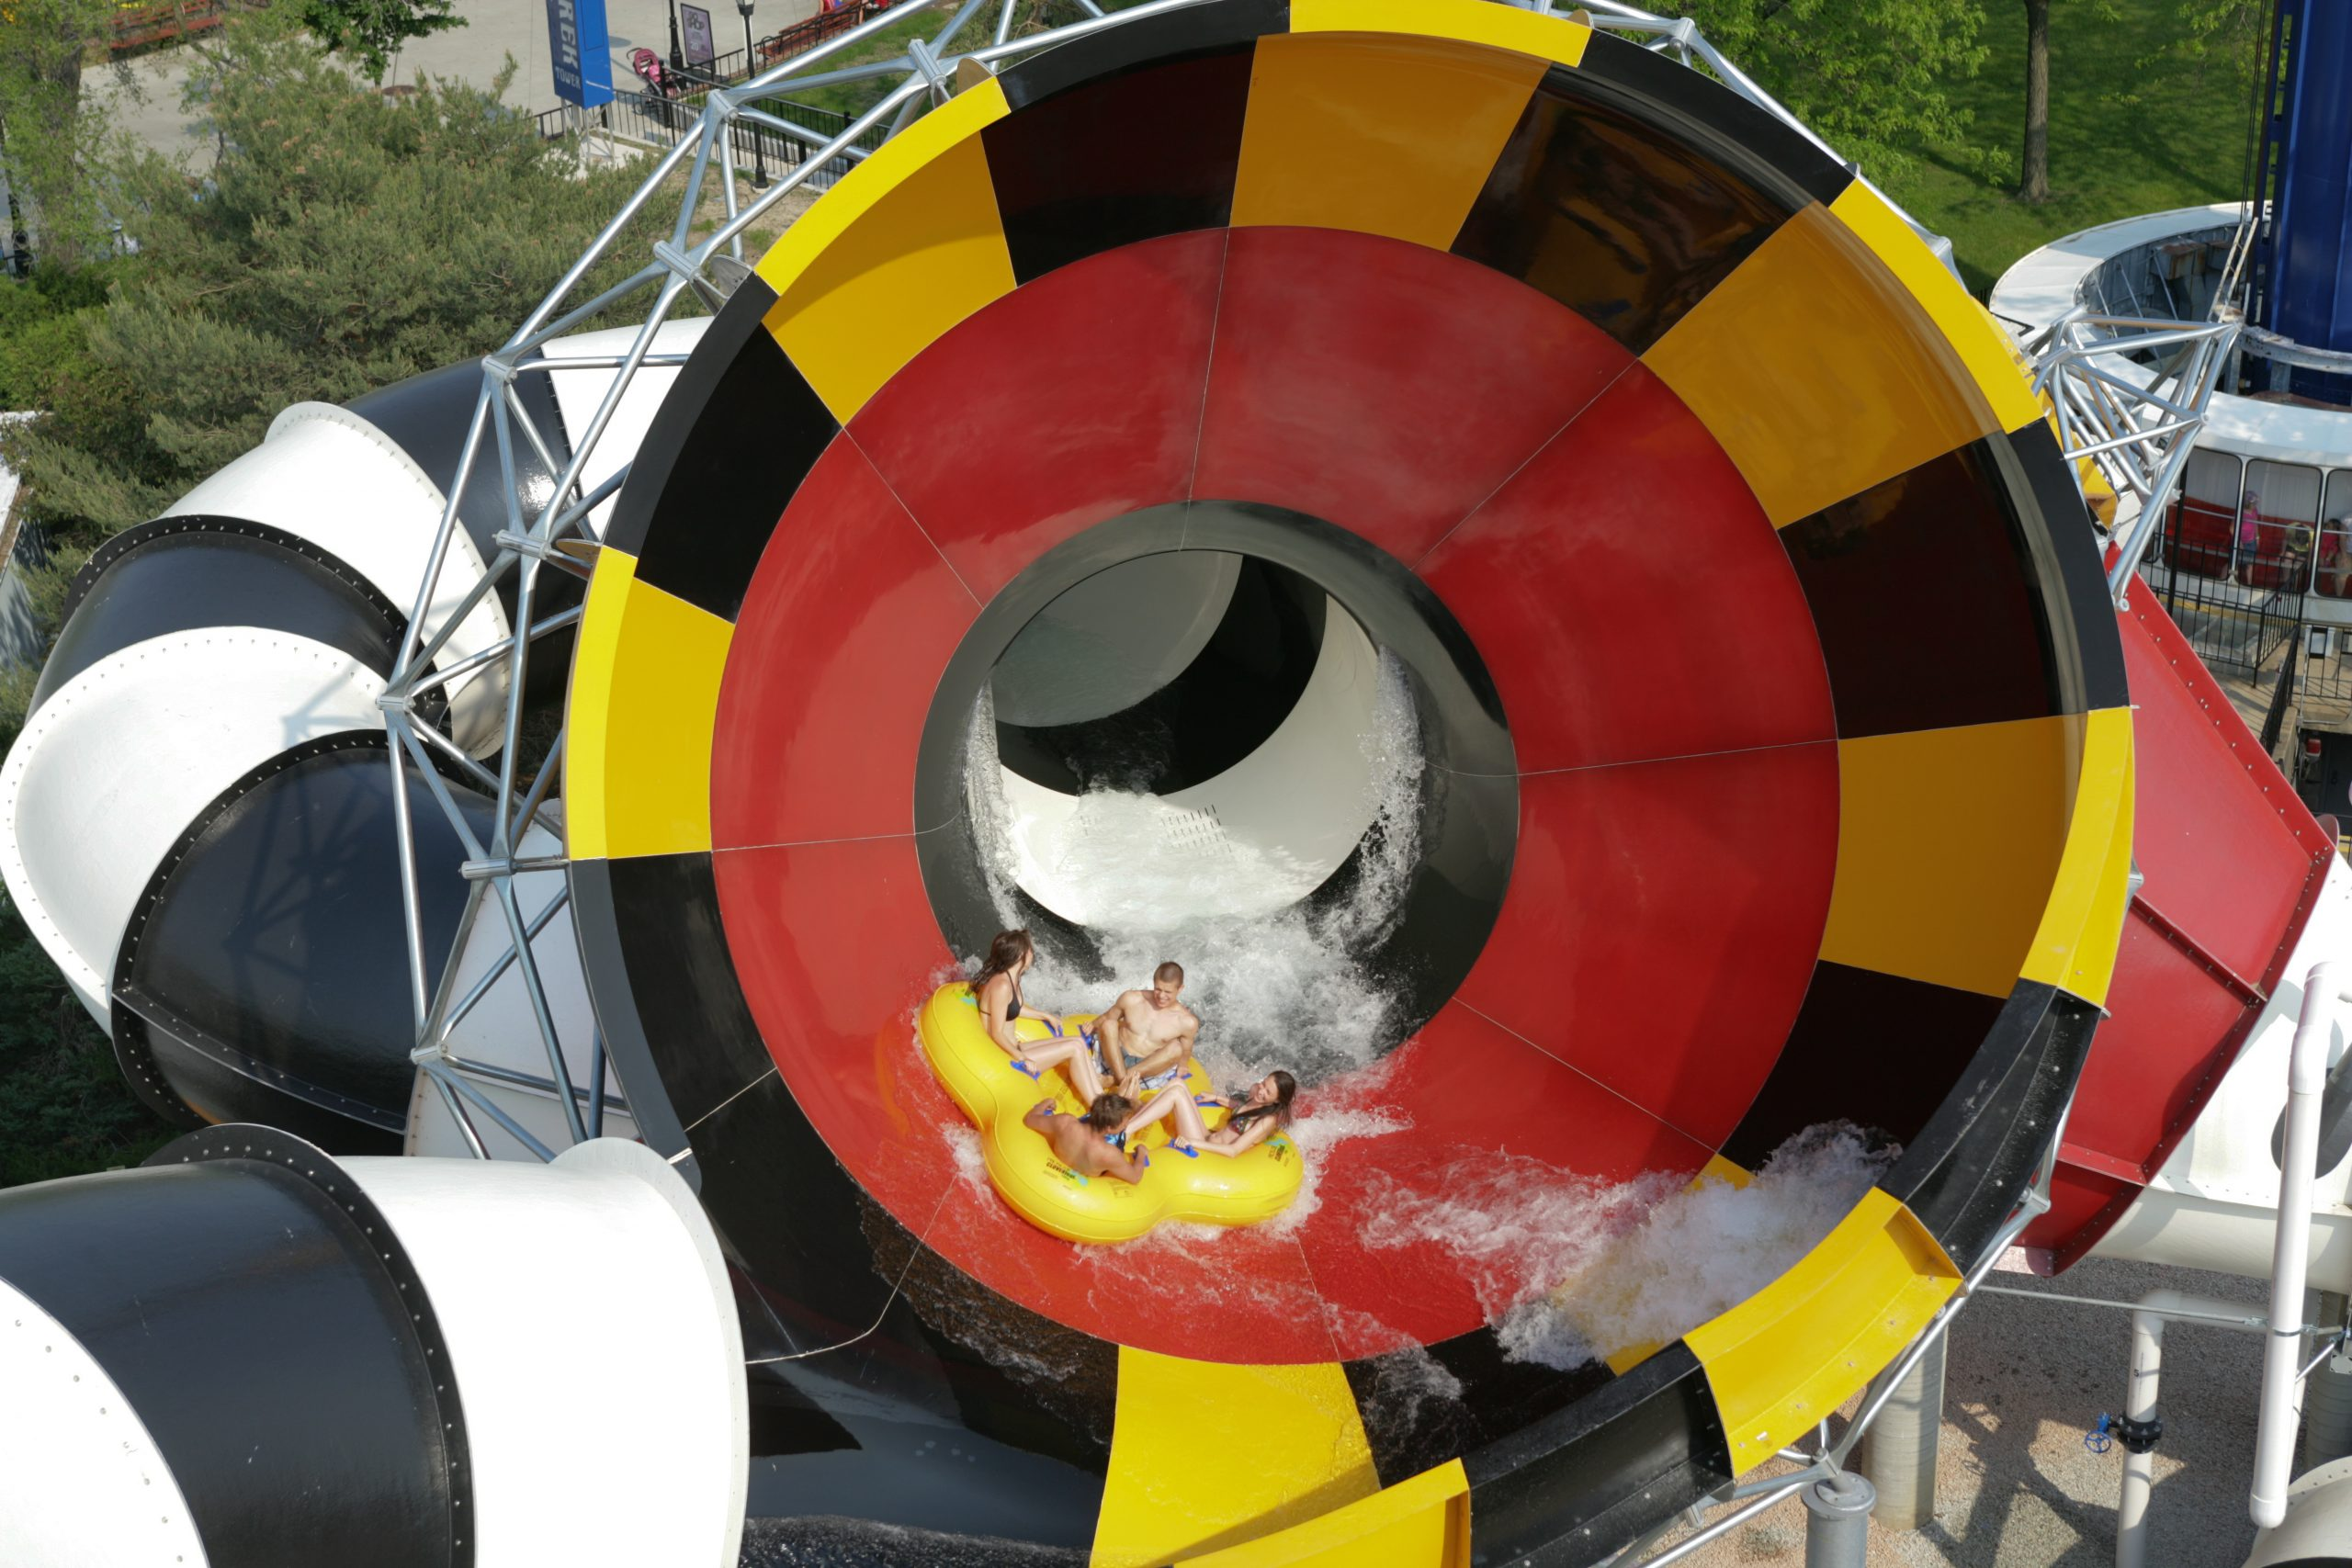 Wipeout at Hurricane Harbor Chicago